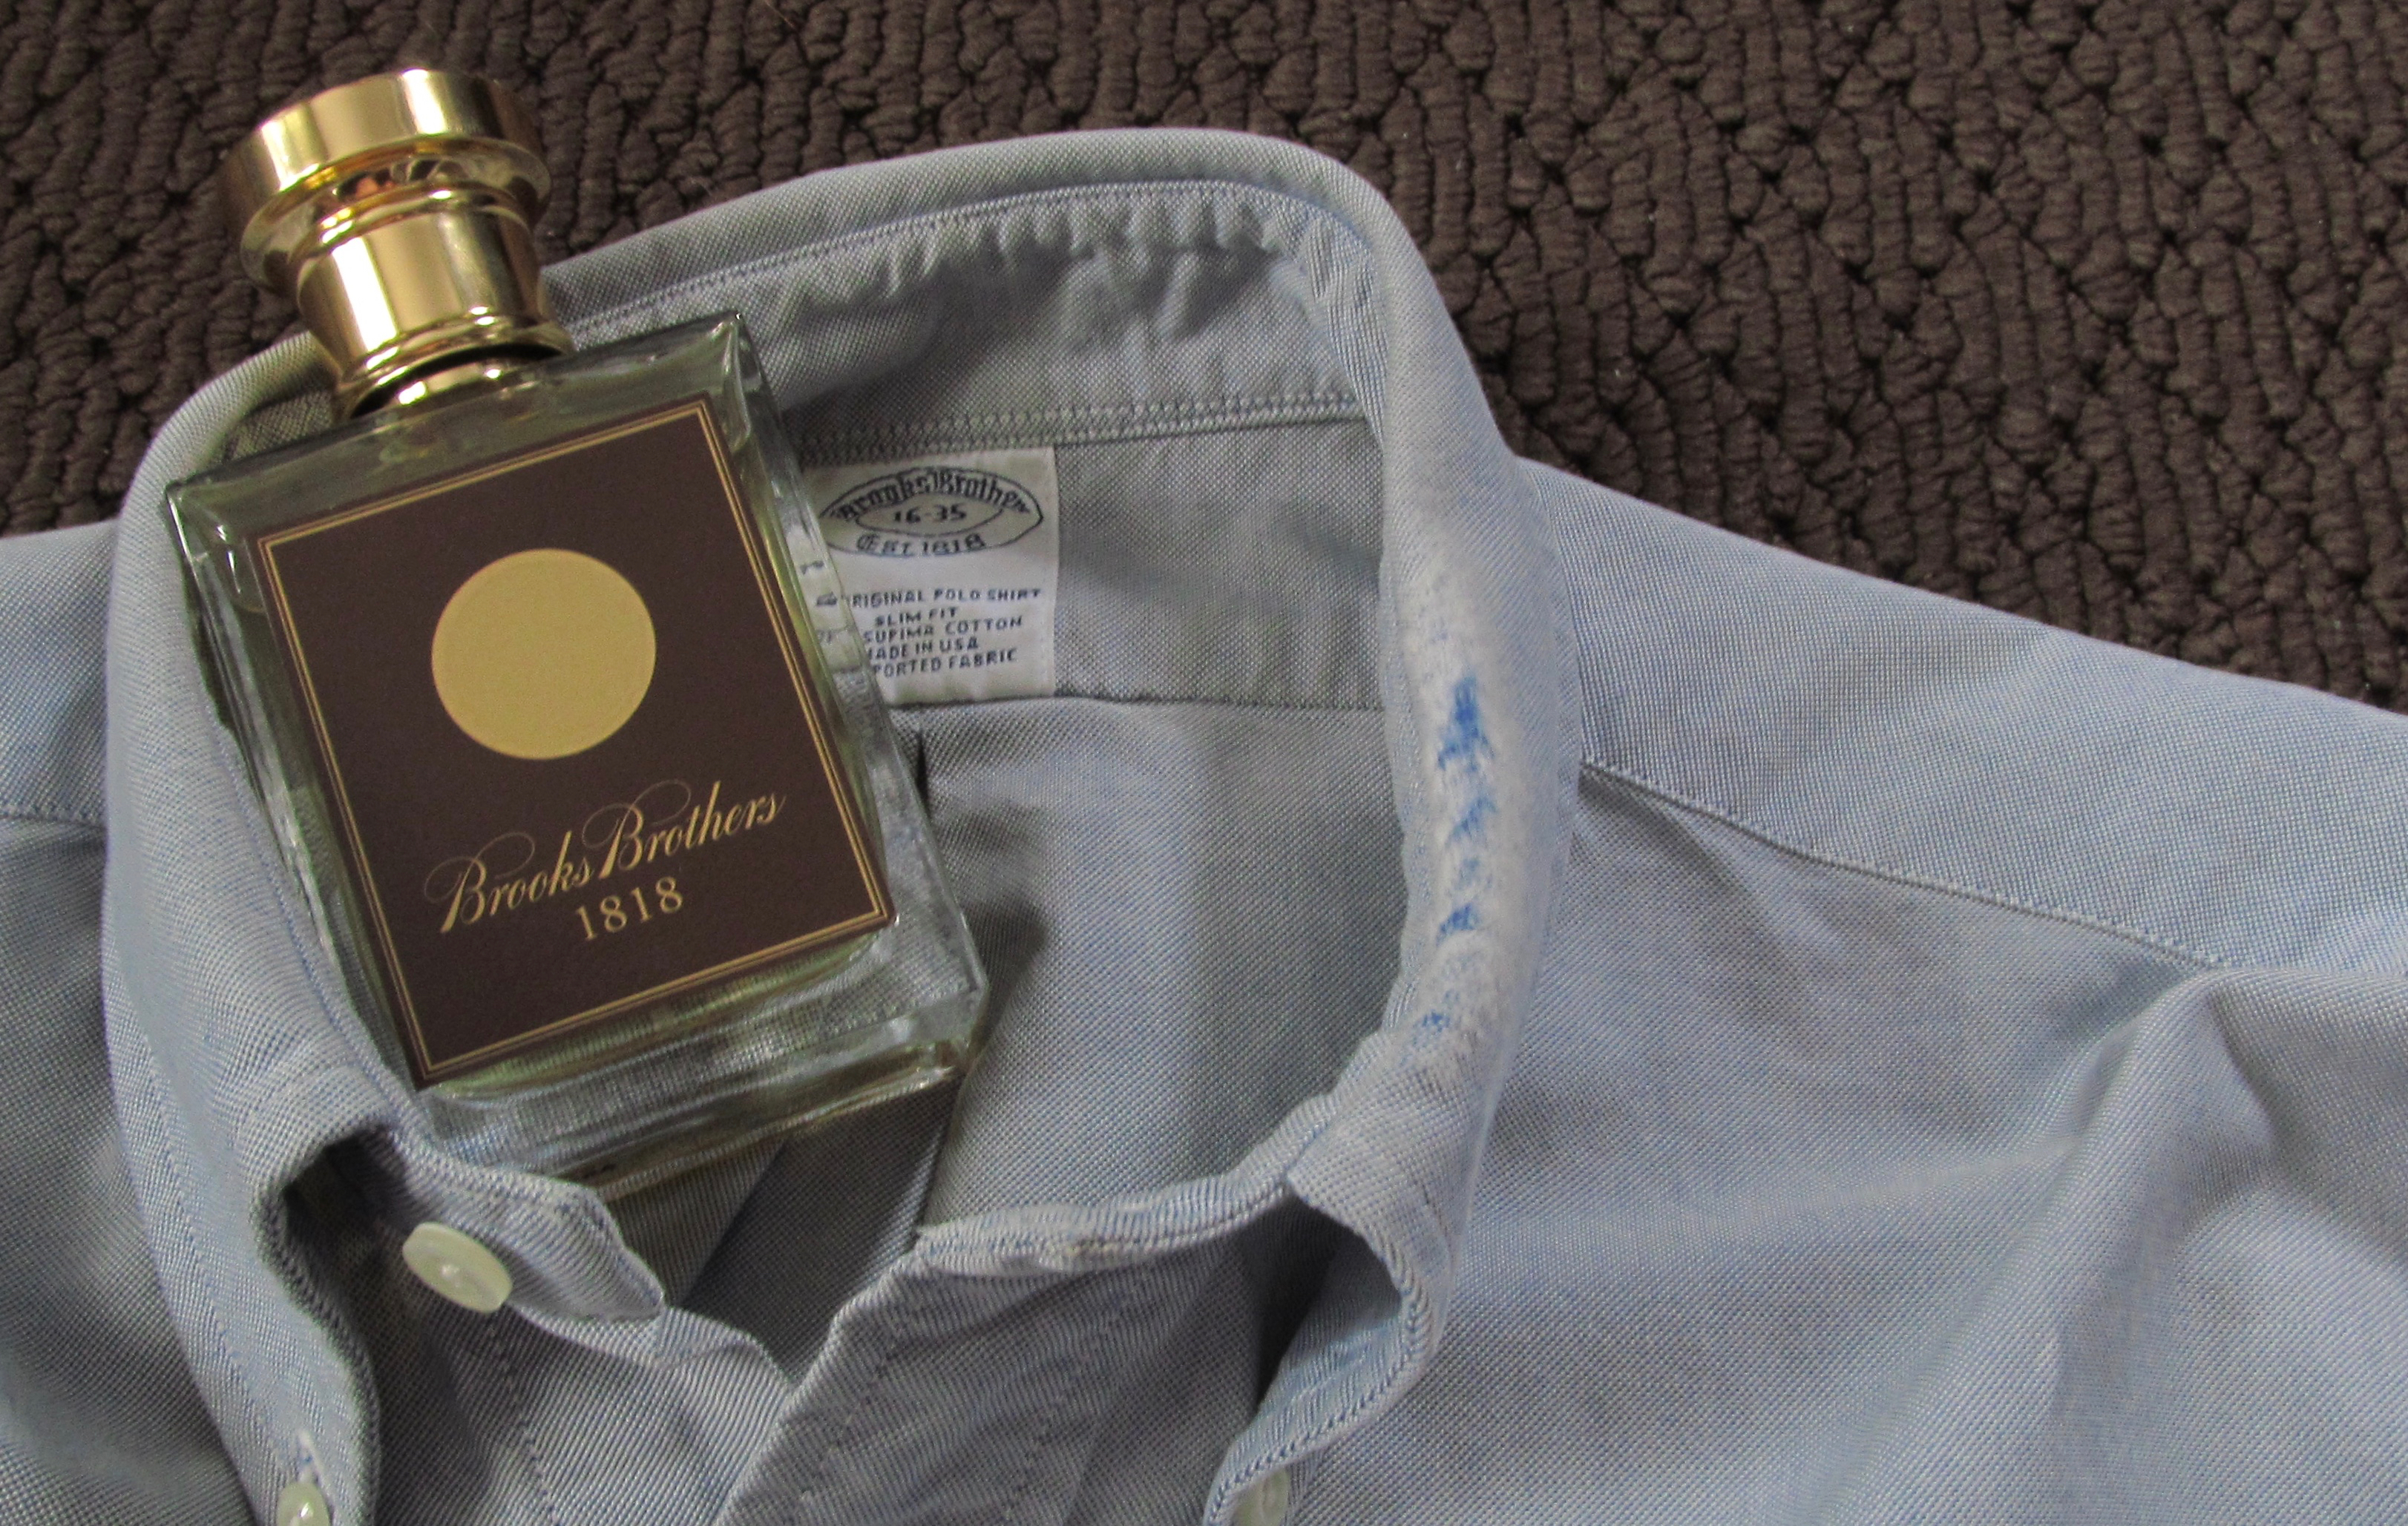 622e4bf24f4 Brooks Brothers 1818 Cologne  The Smell Of Old Money